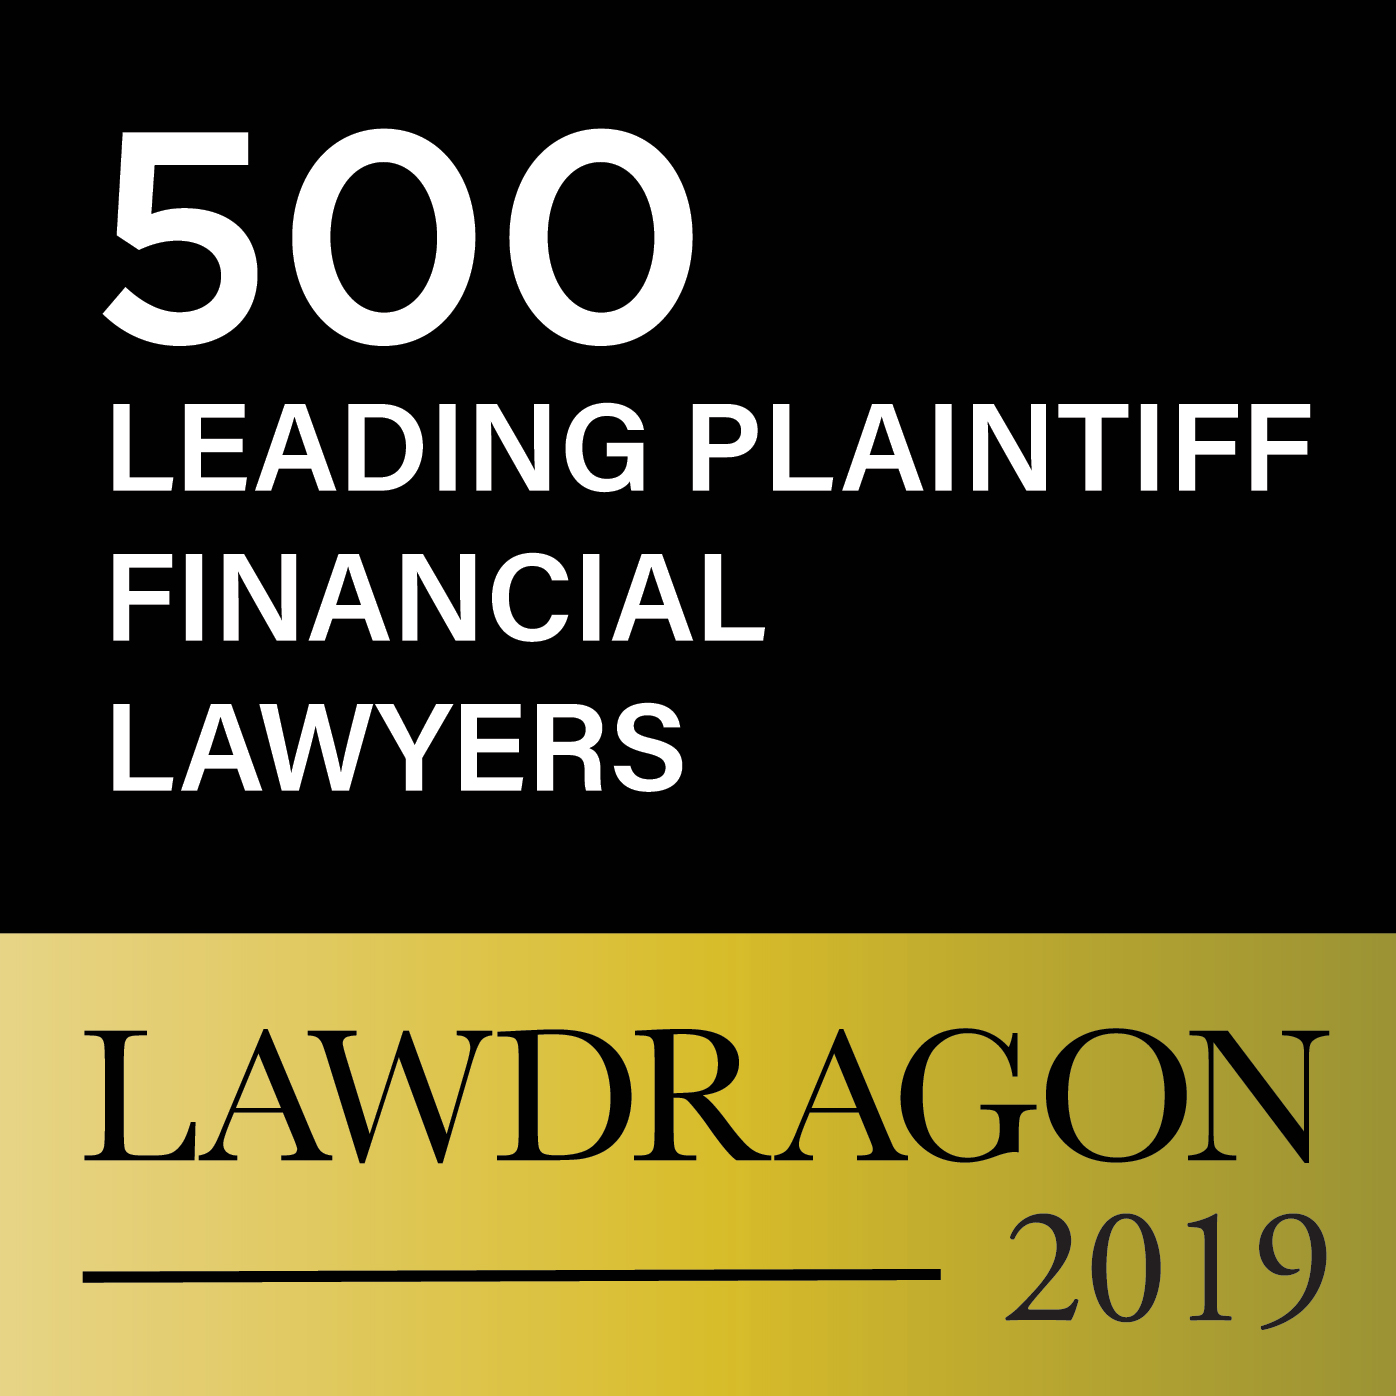 Lawdragon 2019 Badge